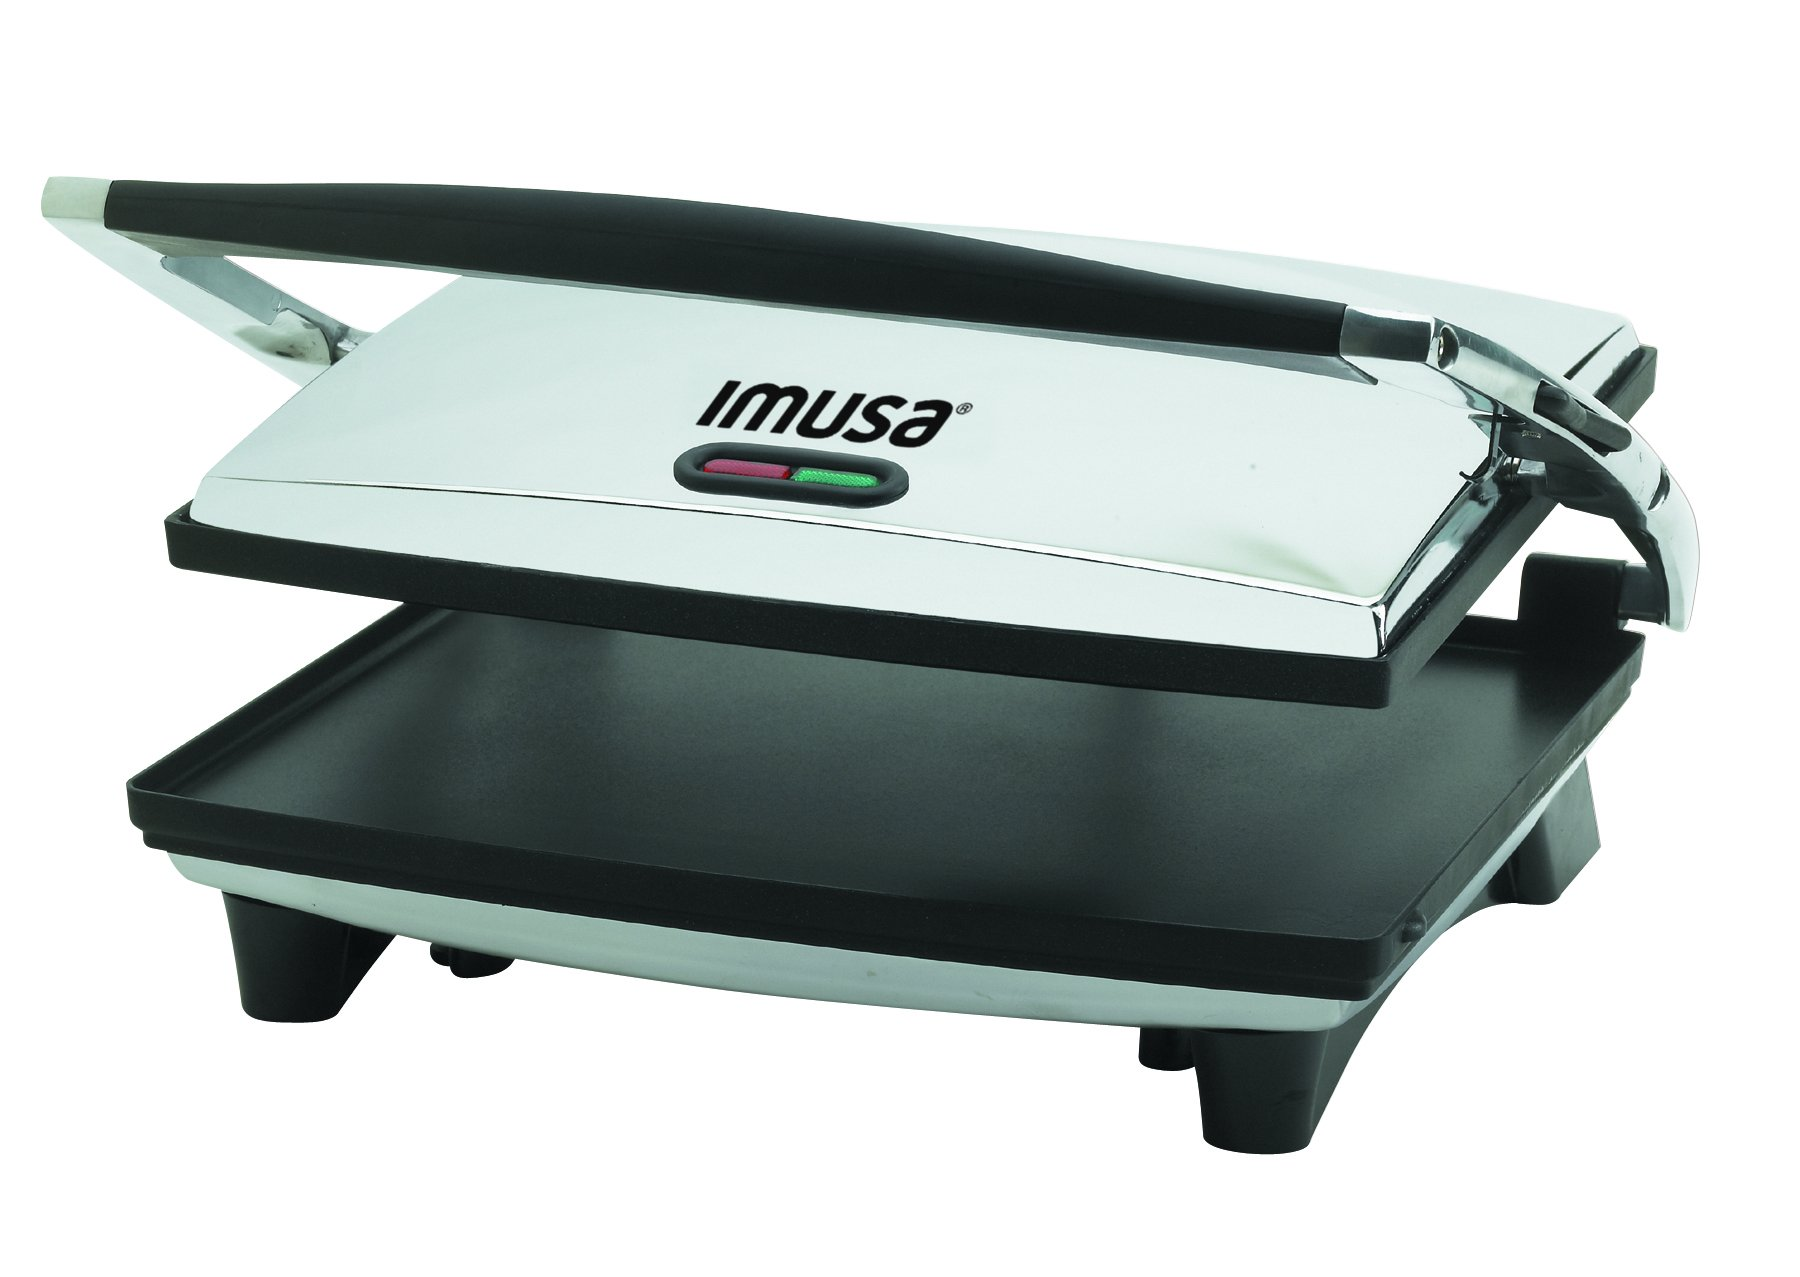 IMUSA USA GAU-80102 Large Electric Panini Press 1400-Watts, Silver by Imusa